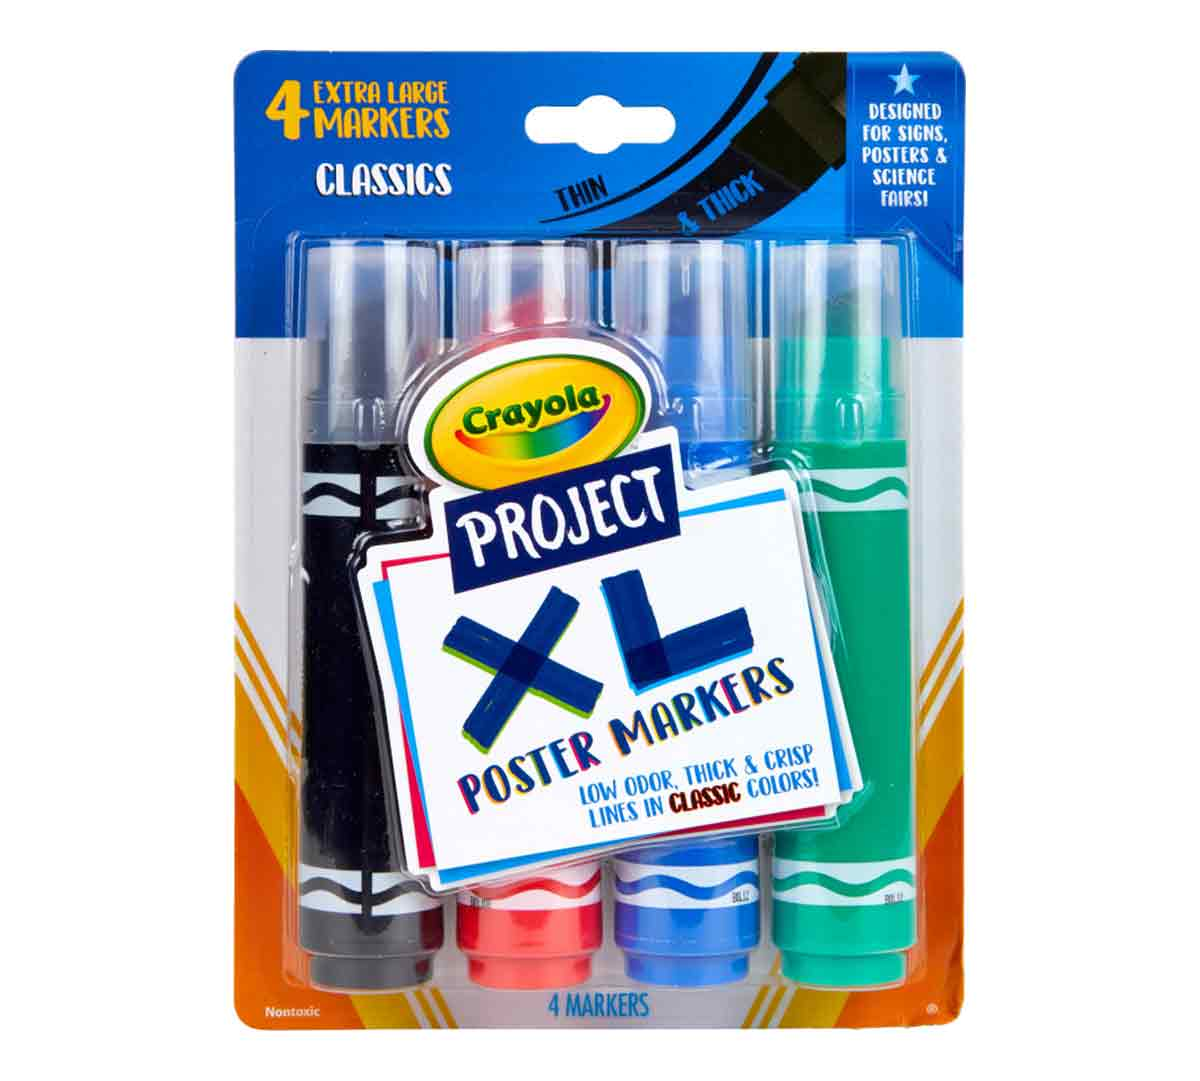 Holiday Toys Gifting Arts and Crafts Stocking Bright Colours Kids Crayola 560482 Project XL Poster Markers Gift for Boys and Girls